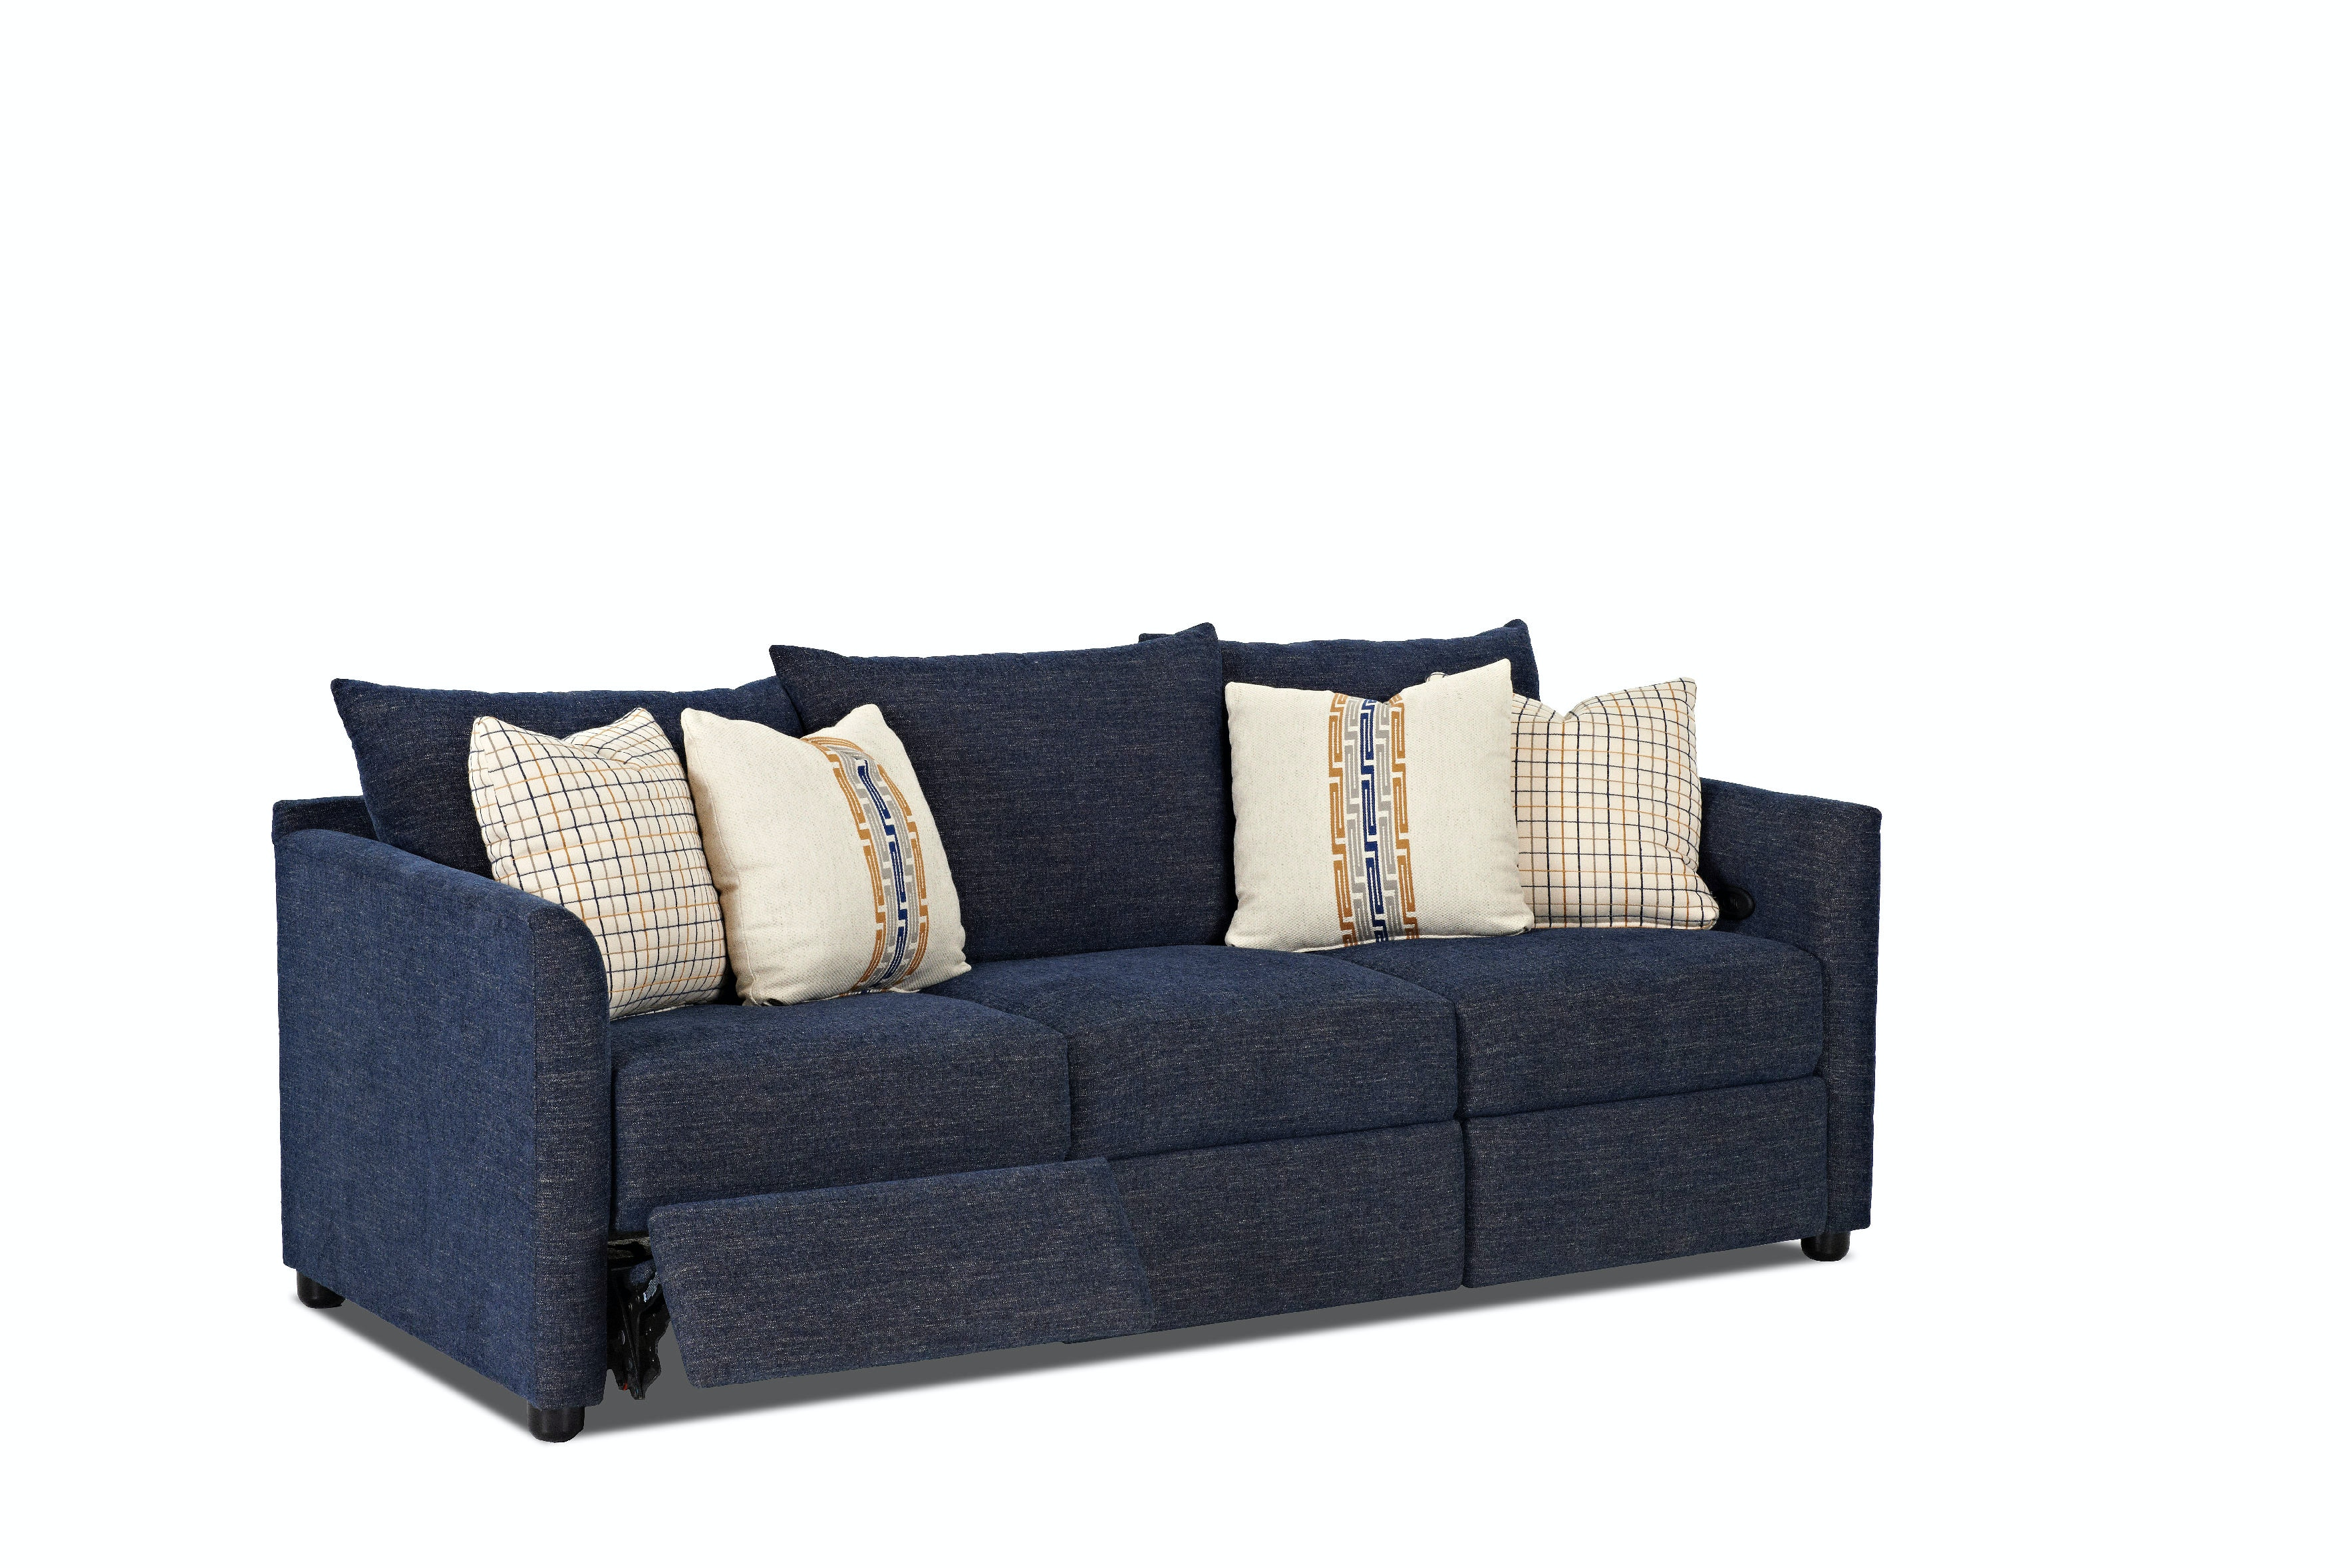 Trisha Yearwood Atlanta Sofa 27803 PWRS